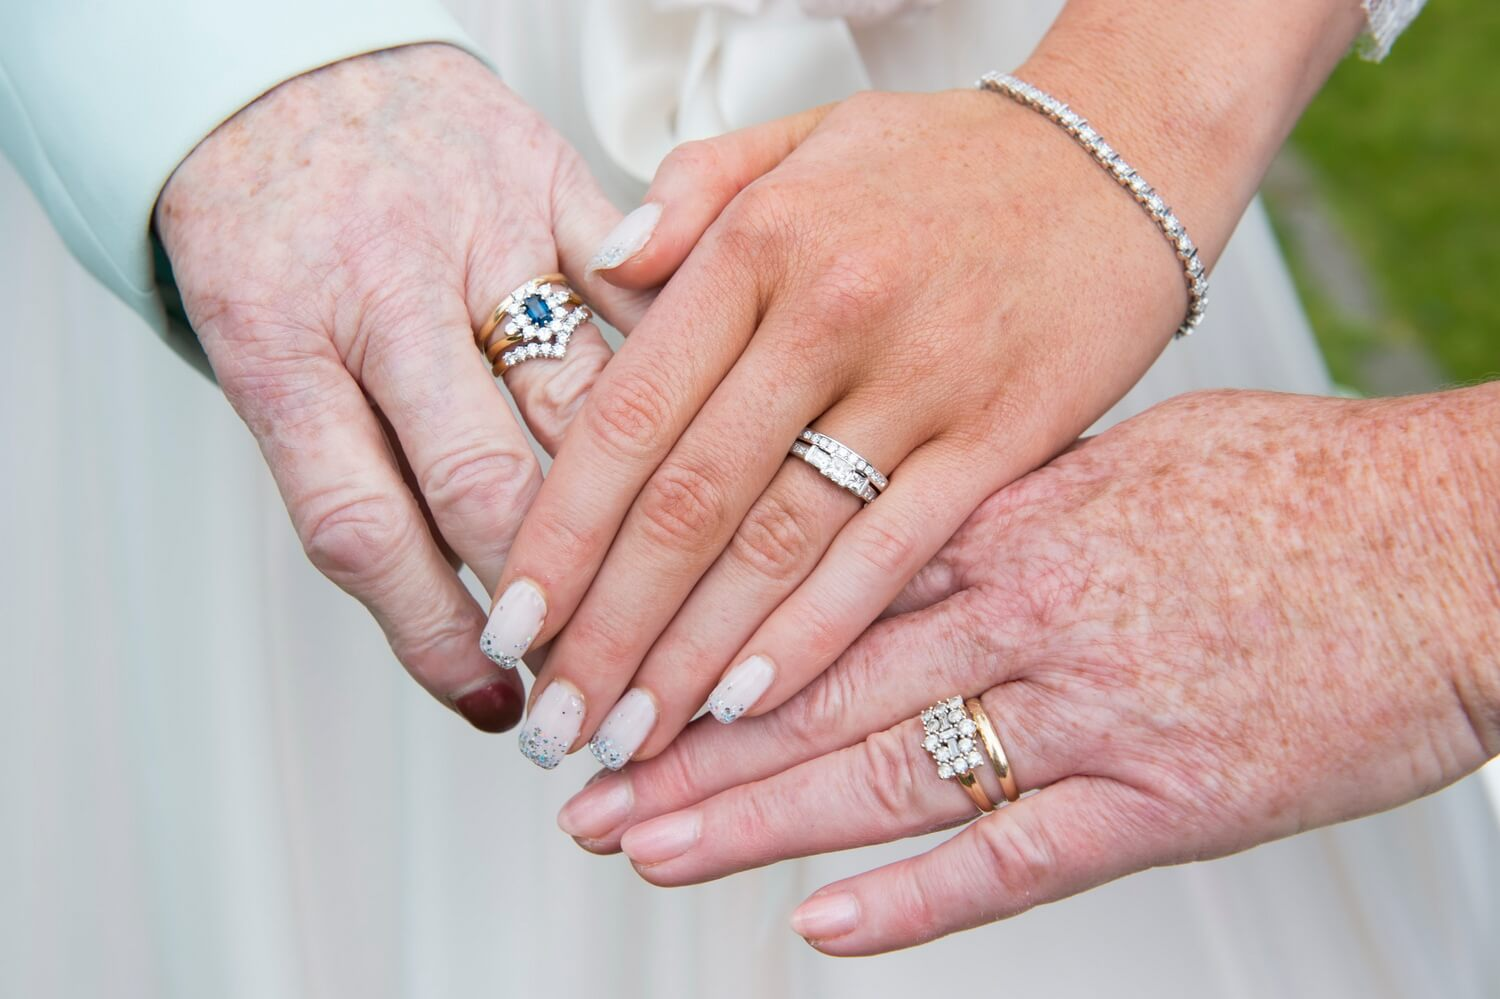 Wedding Photography of Rings and Hands showing Three Generations